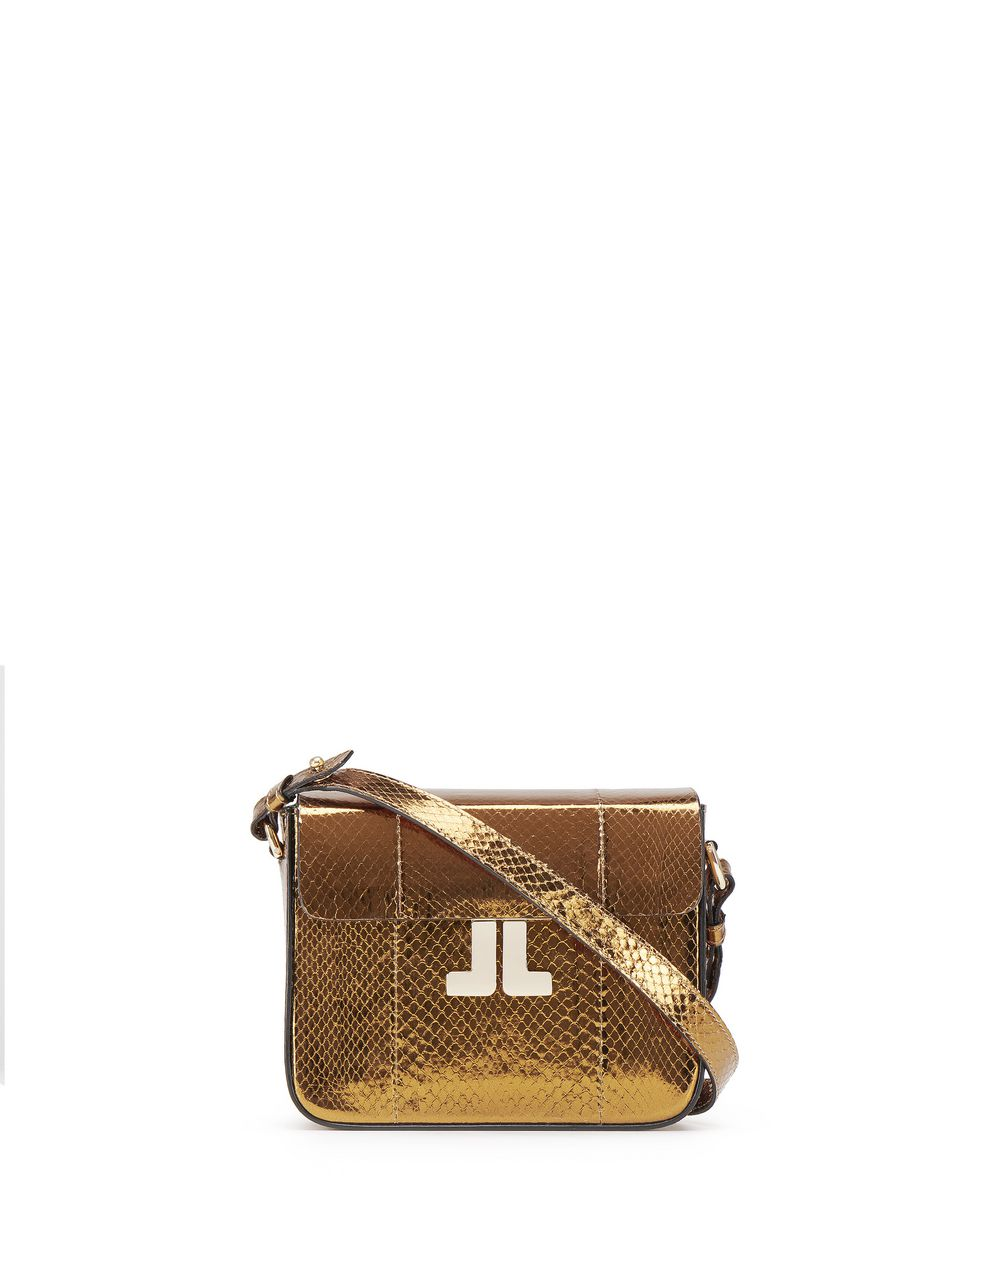 "MINI BRONZE ""JL"" BAG - Lanvin"